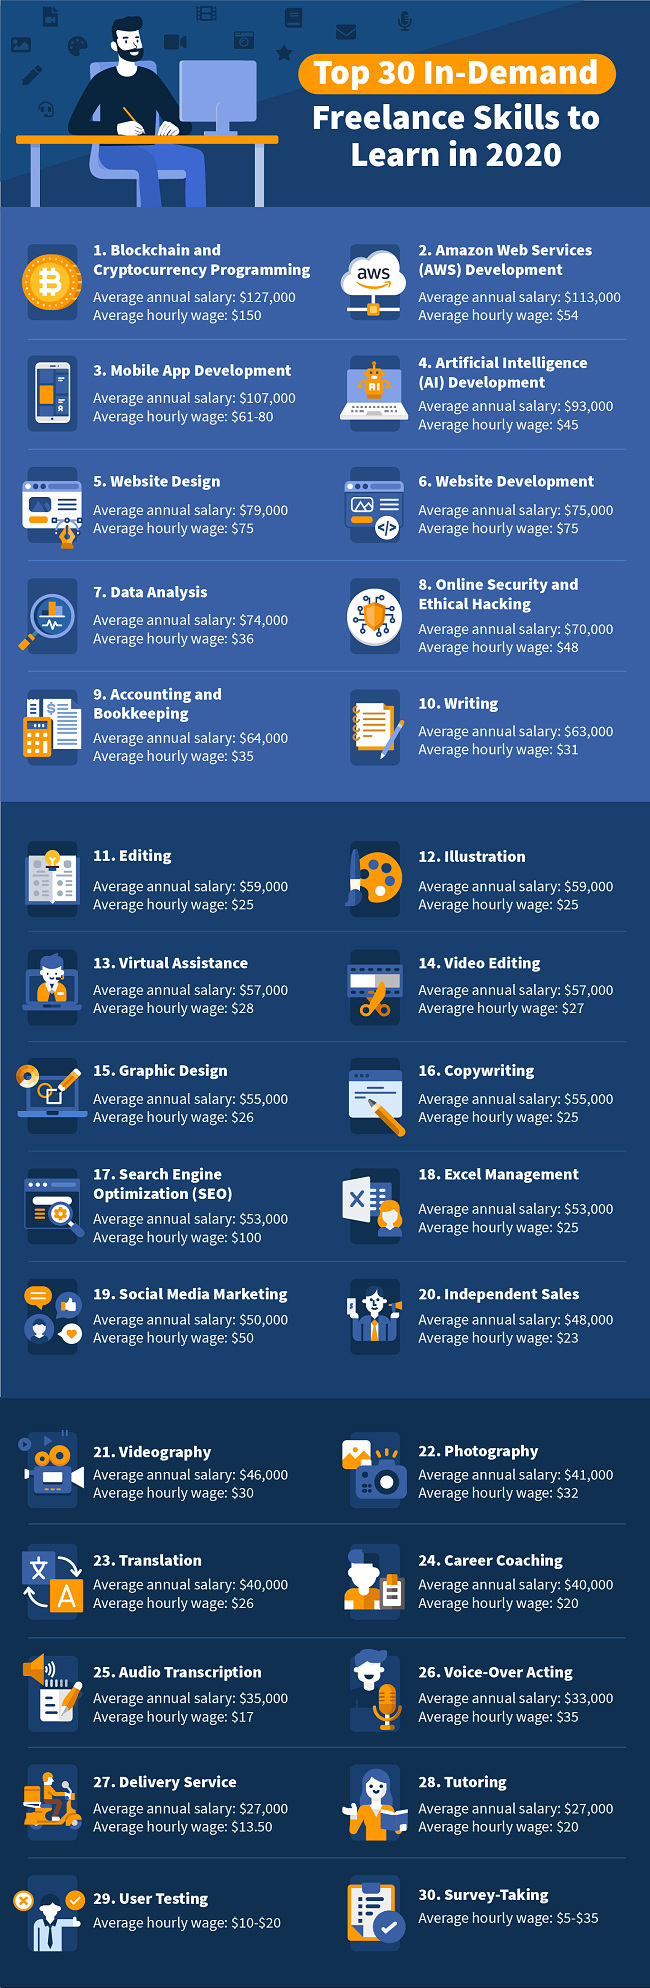 Infographics presentation of Top 30 Freelance Skills to Learn showing data for 30 the most wanted freelance jobs and their wages in 2020